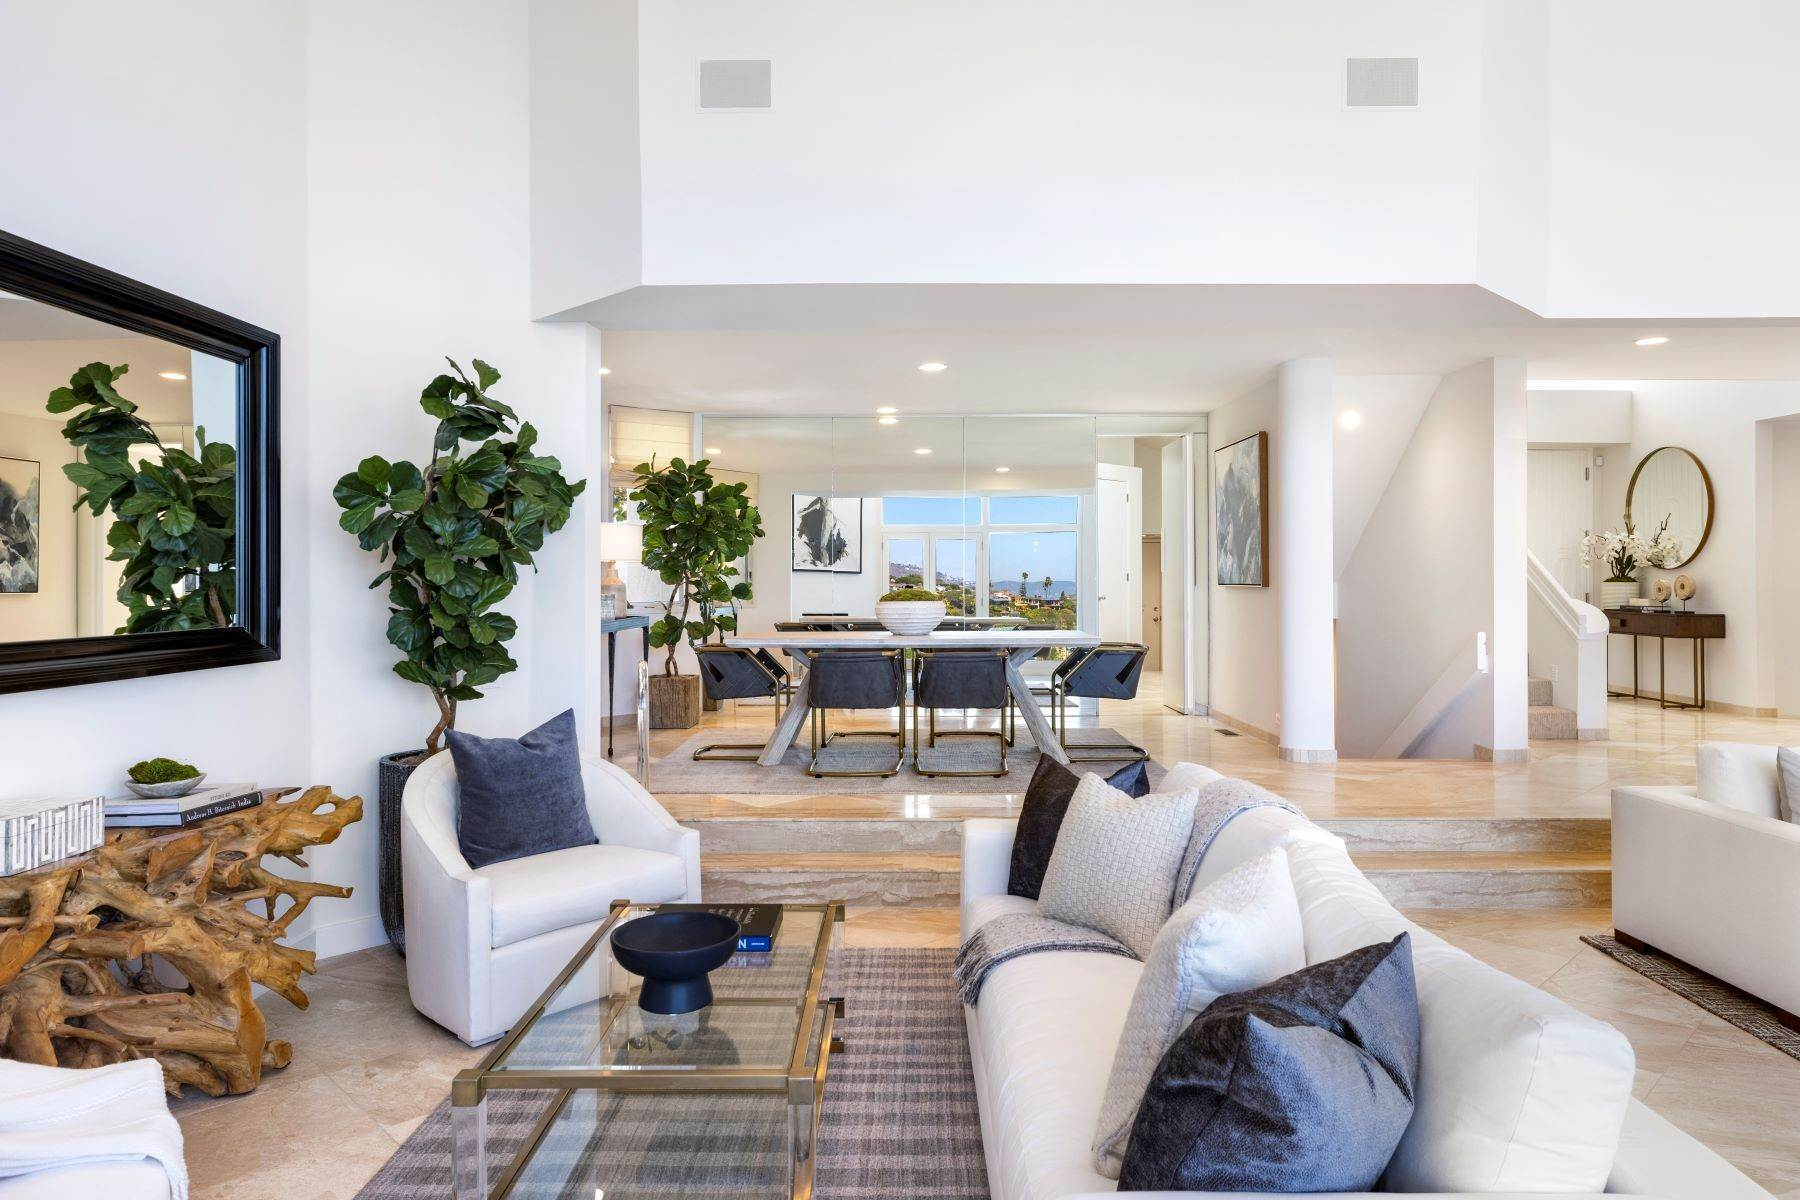 11. Single Family Homes for Sale at 112 South La Senda Drive, Laguna Beach, CA 92651 112 South La Senda Drive Laguna Beach, California 92651 United States